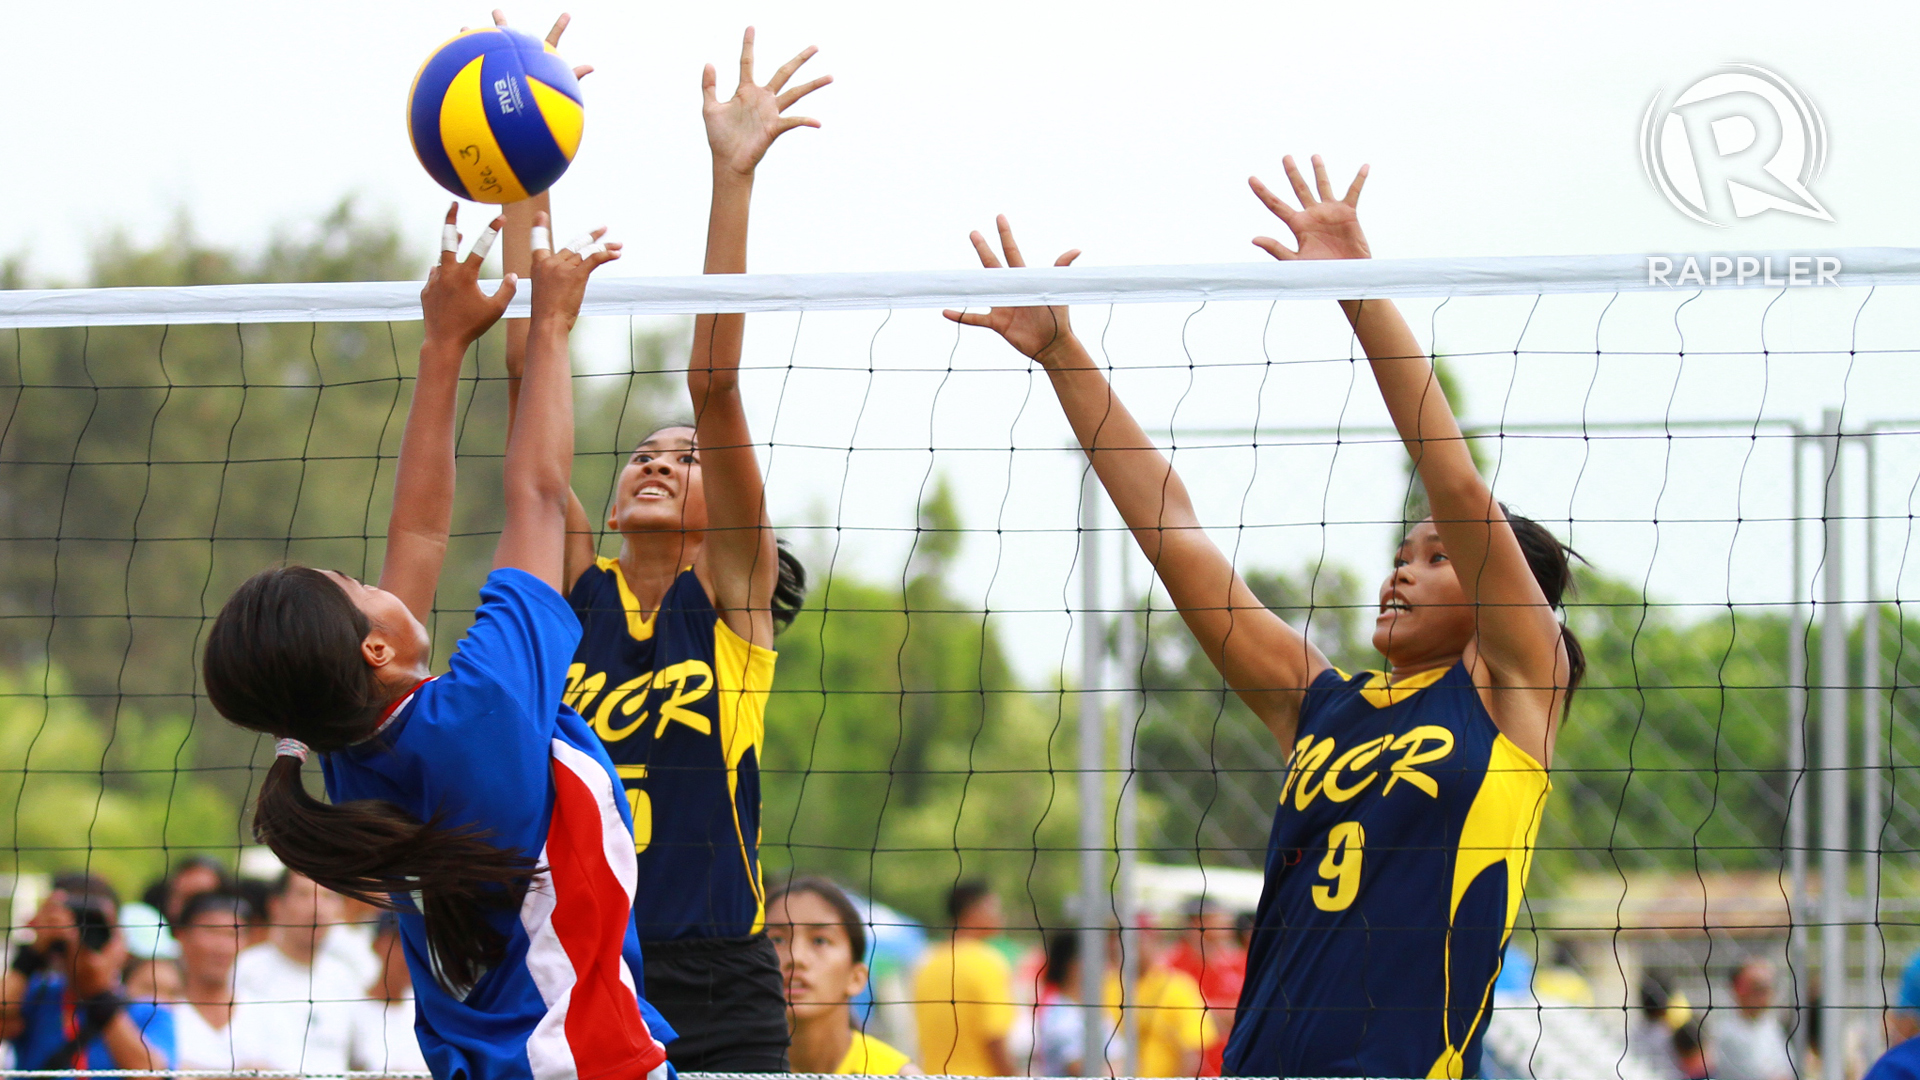 Volleyball: Favorites advance to semis